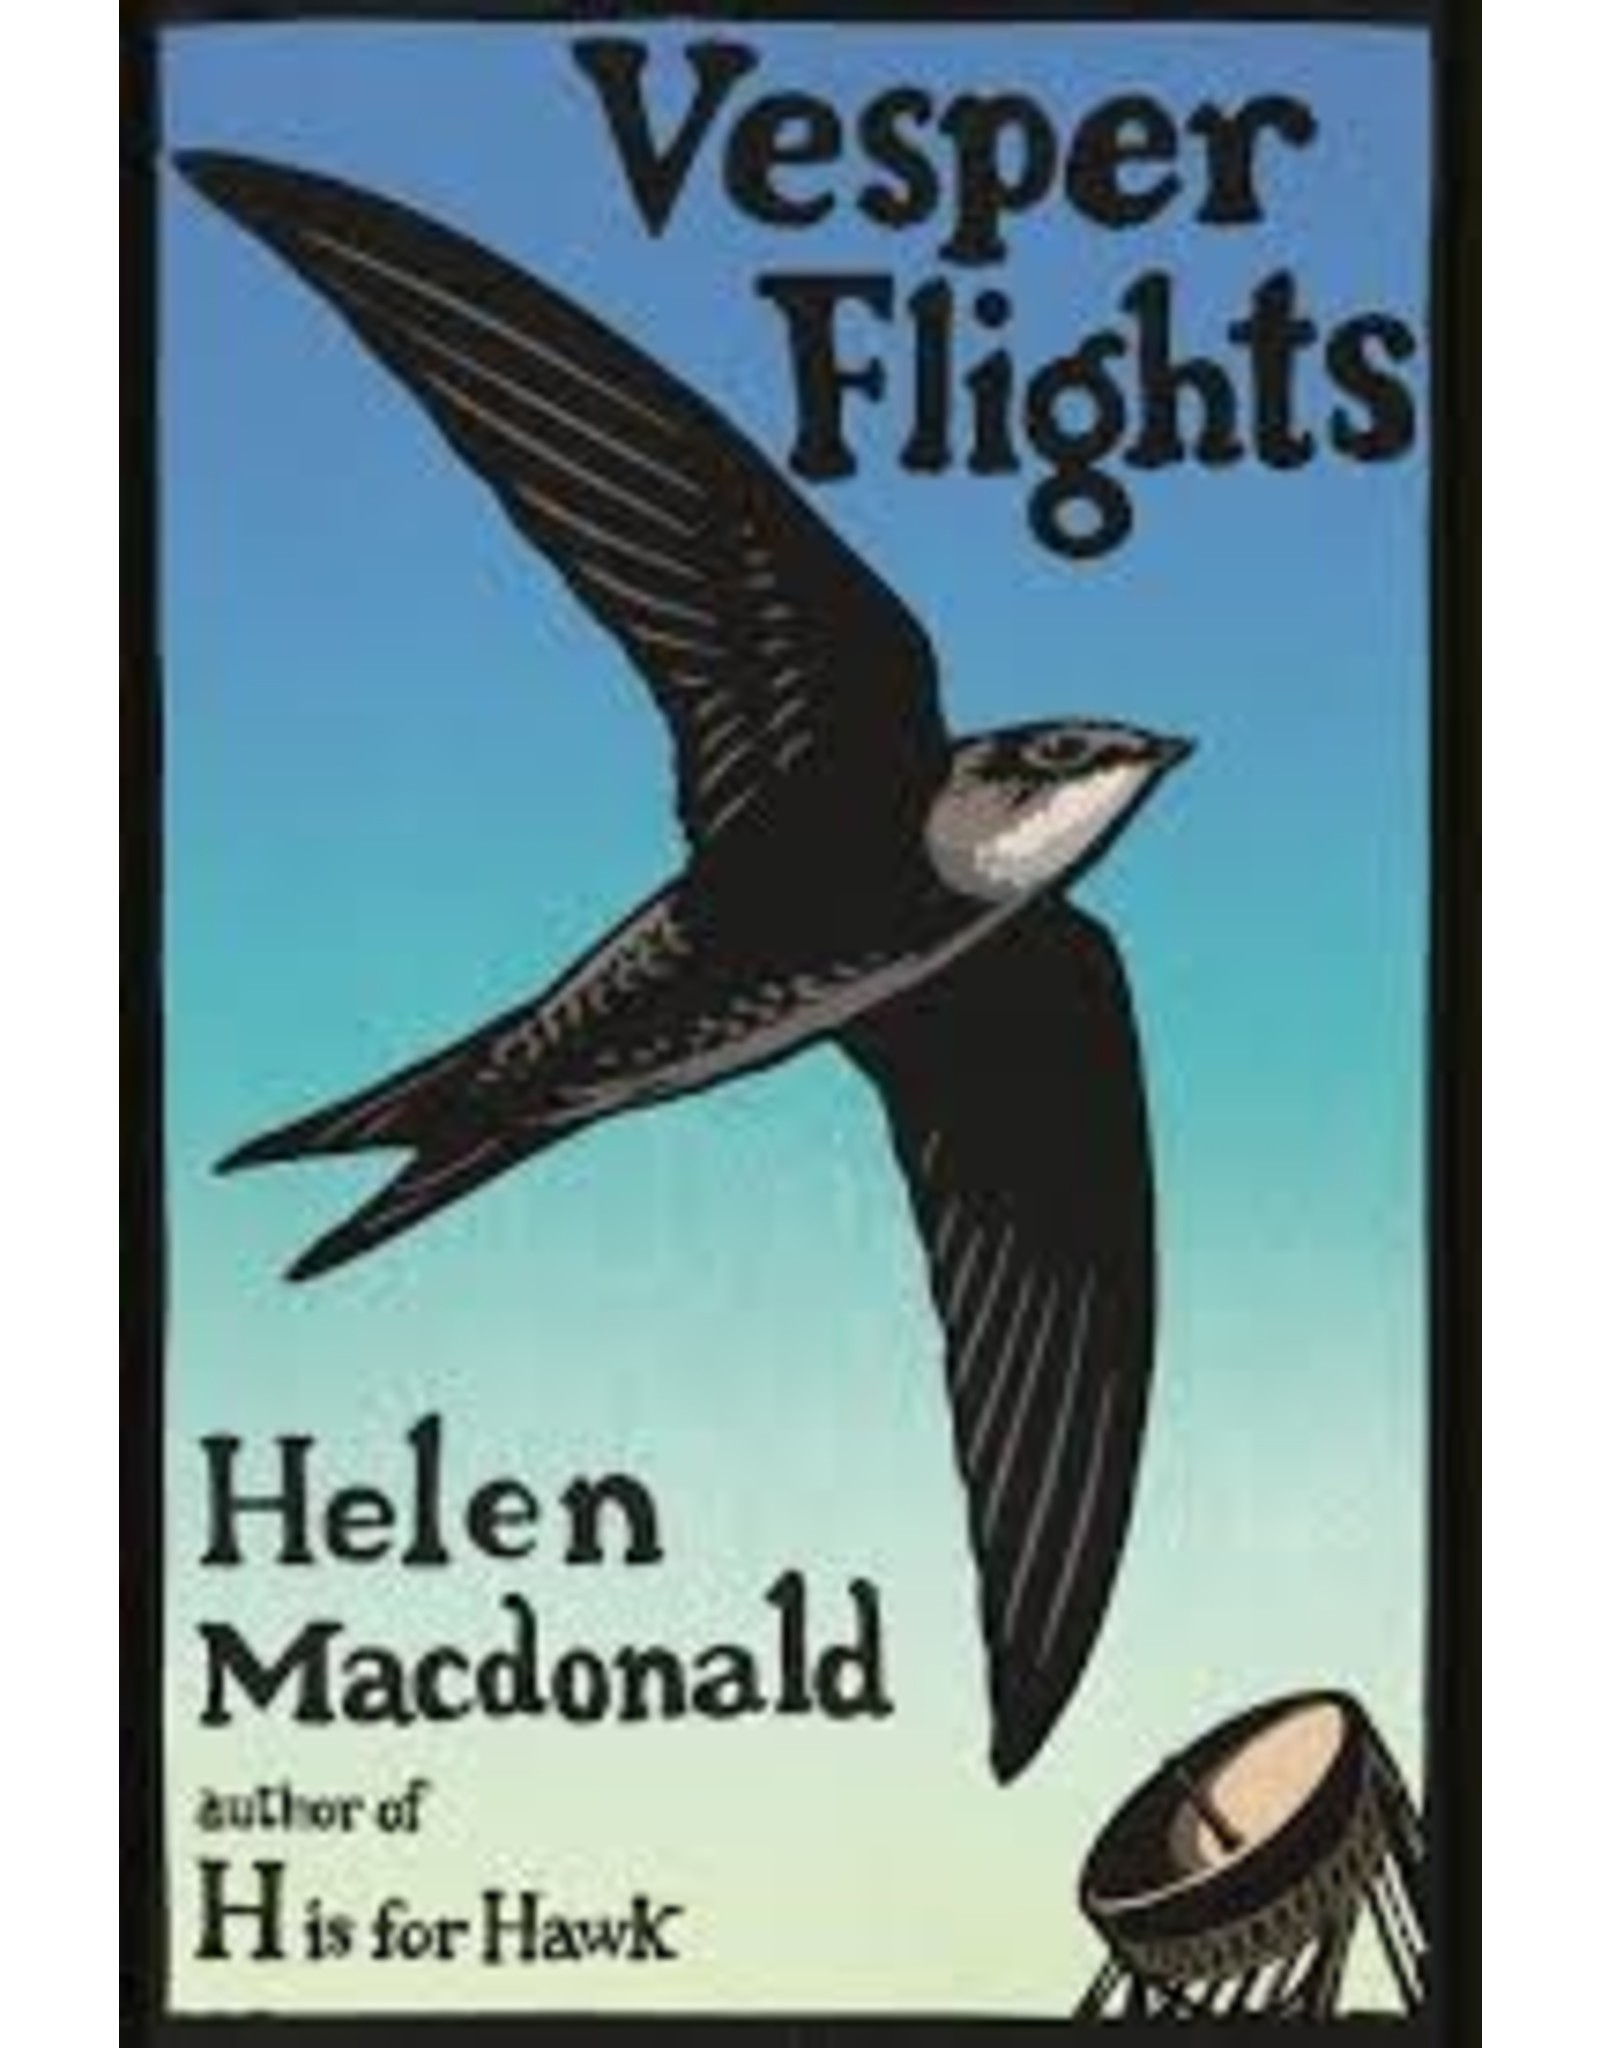 Books Vesper Flights by Helen Macdonald